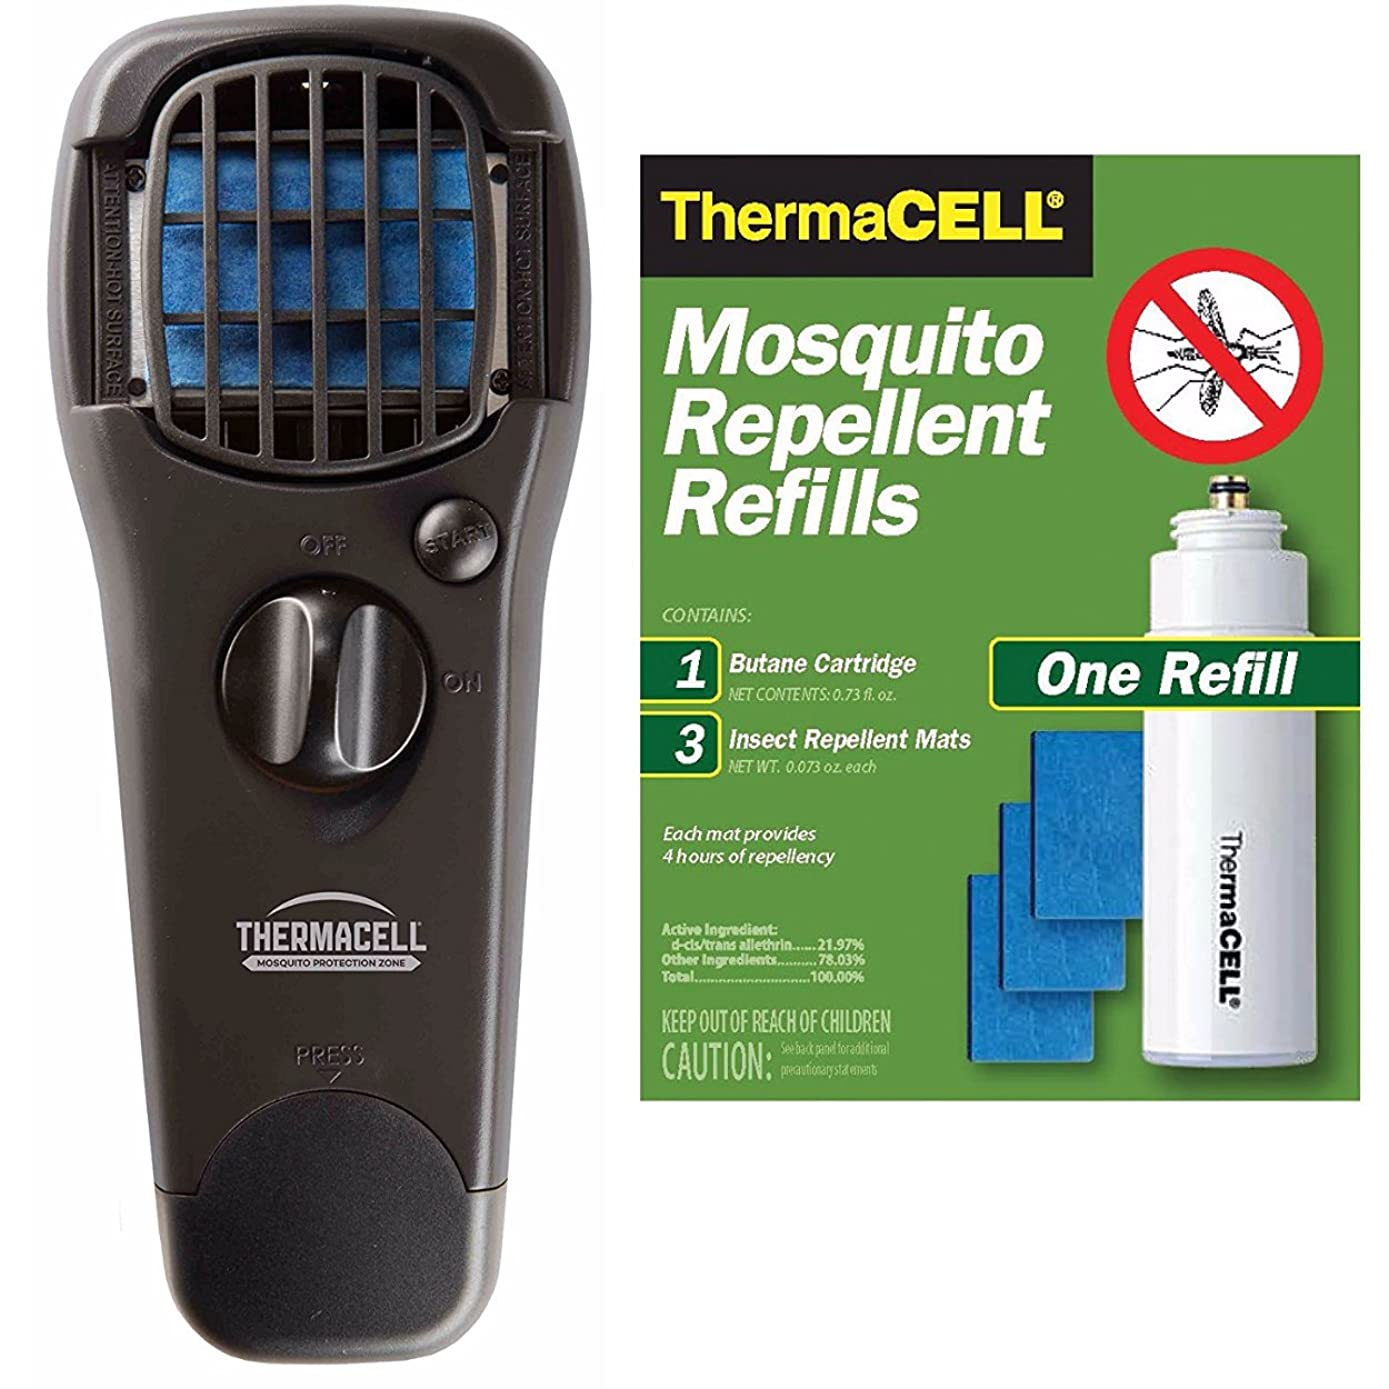 Thermacell Portable Mosquito Repeller (Black) and R-1 Refill Pack - 24 Hours of Protection